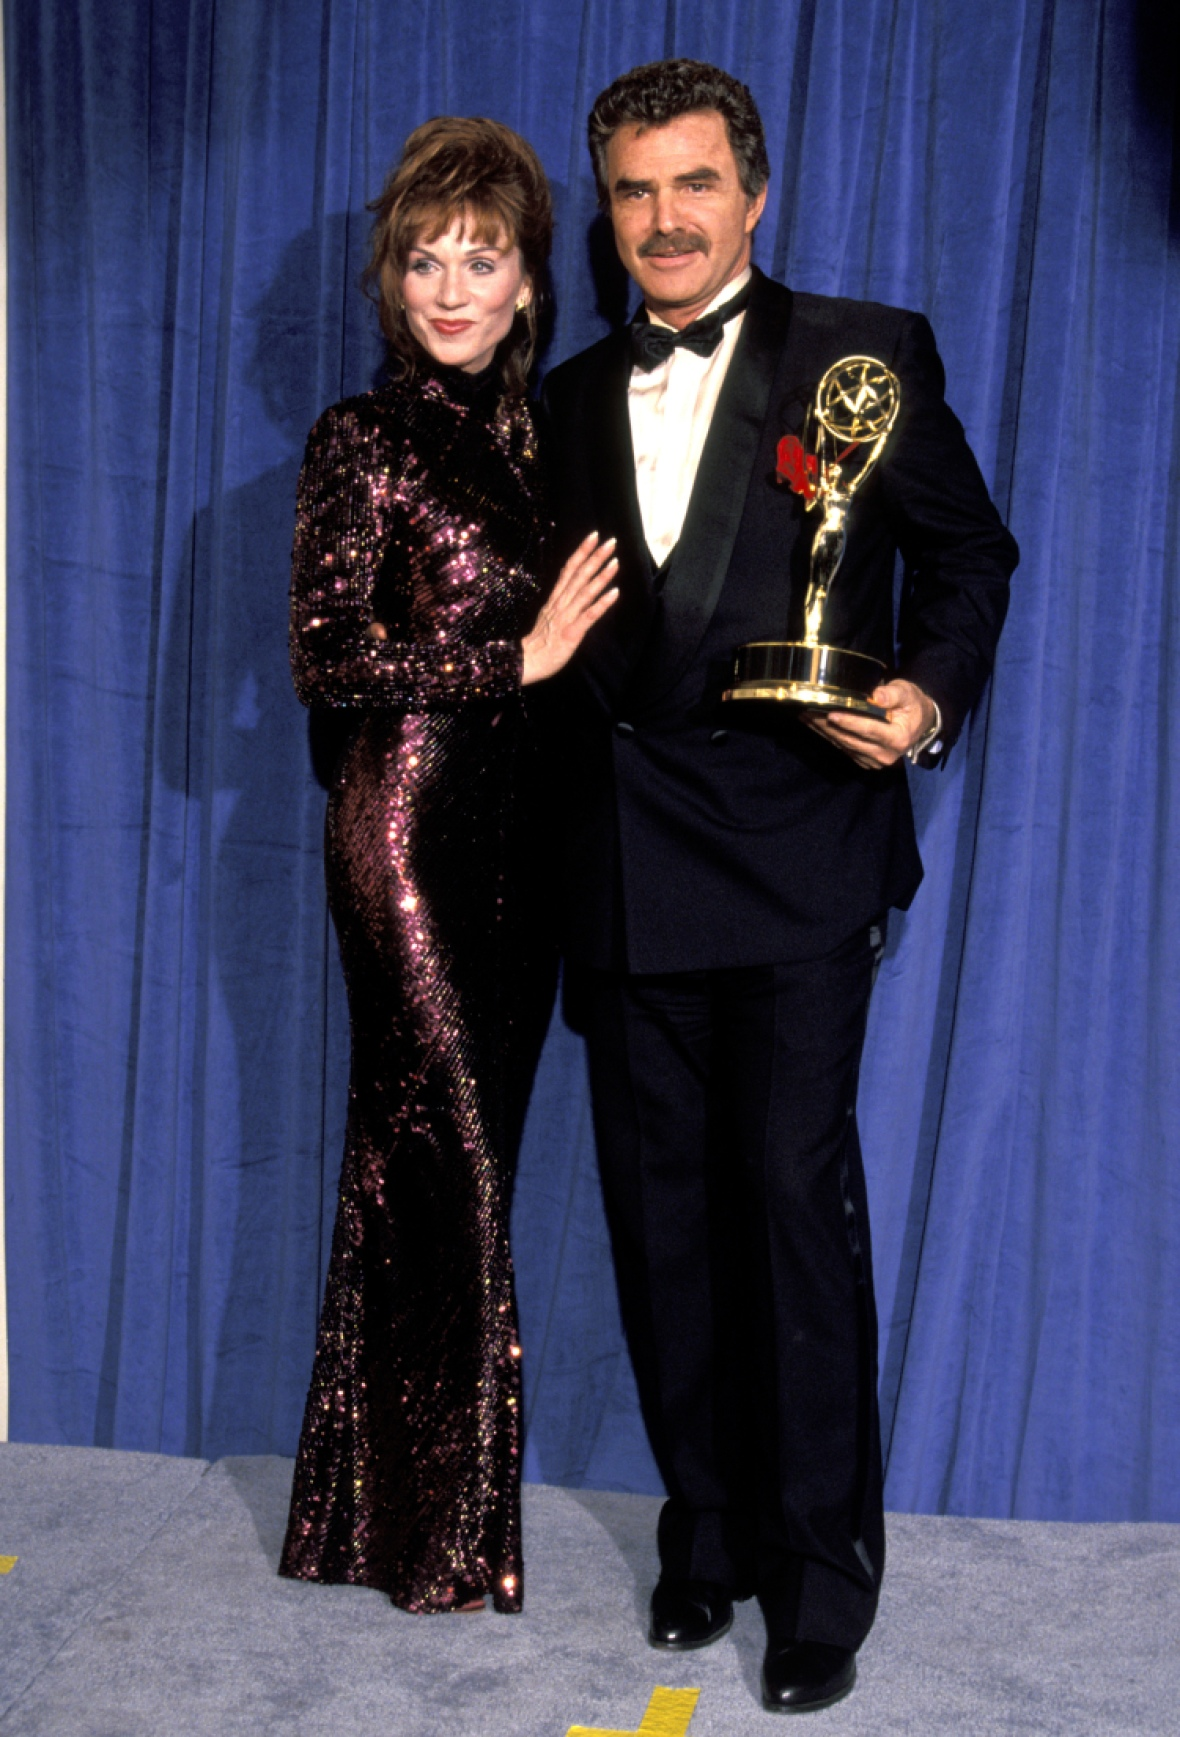 burt reynolds and marilu henner